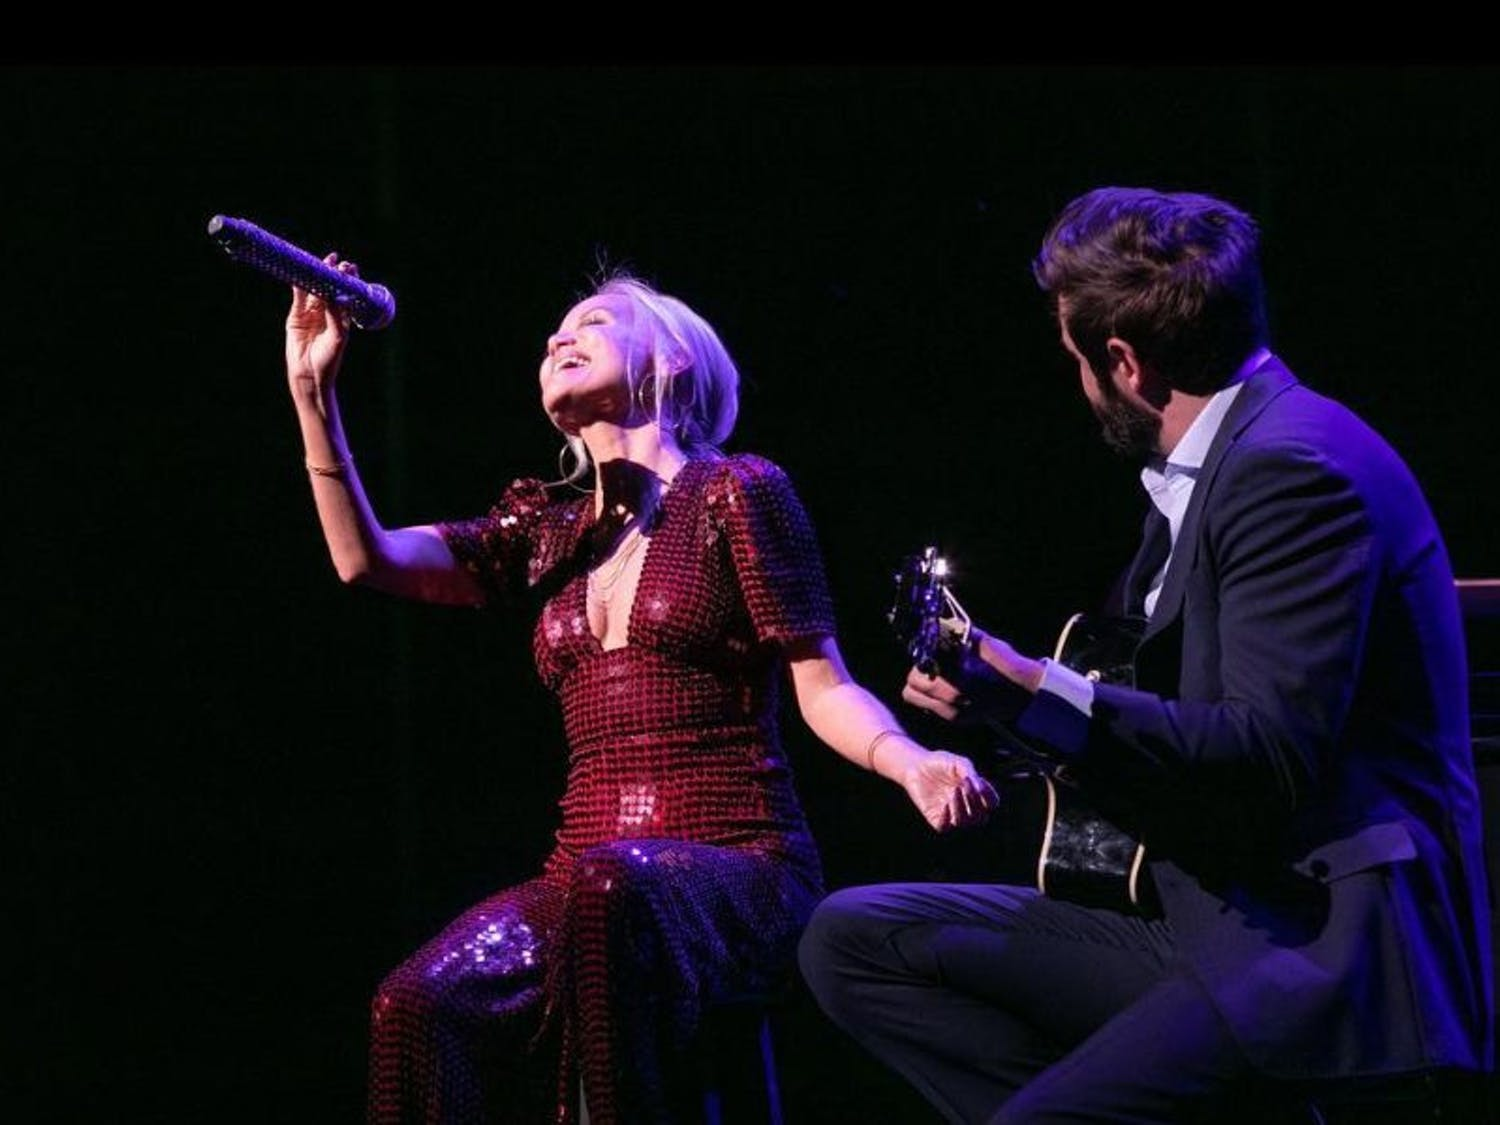 """Chenoweth is known to include famed """"Wicked"""" hit """"For Good"""" in her performance sets."""